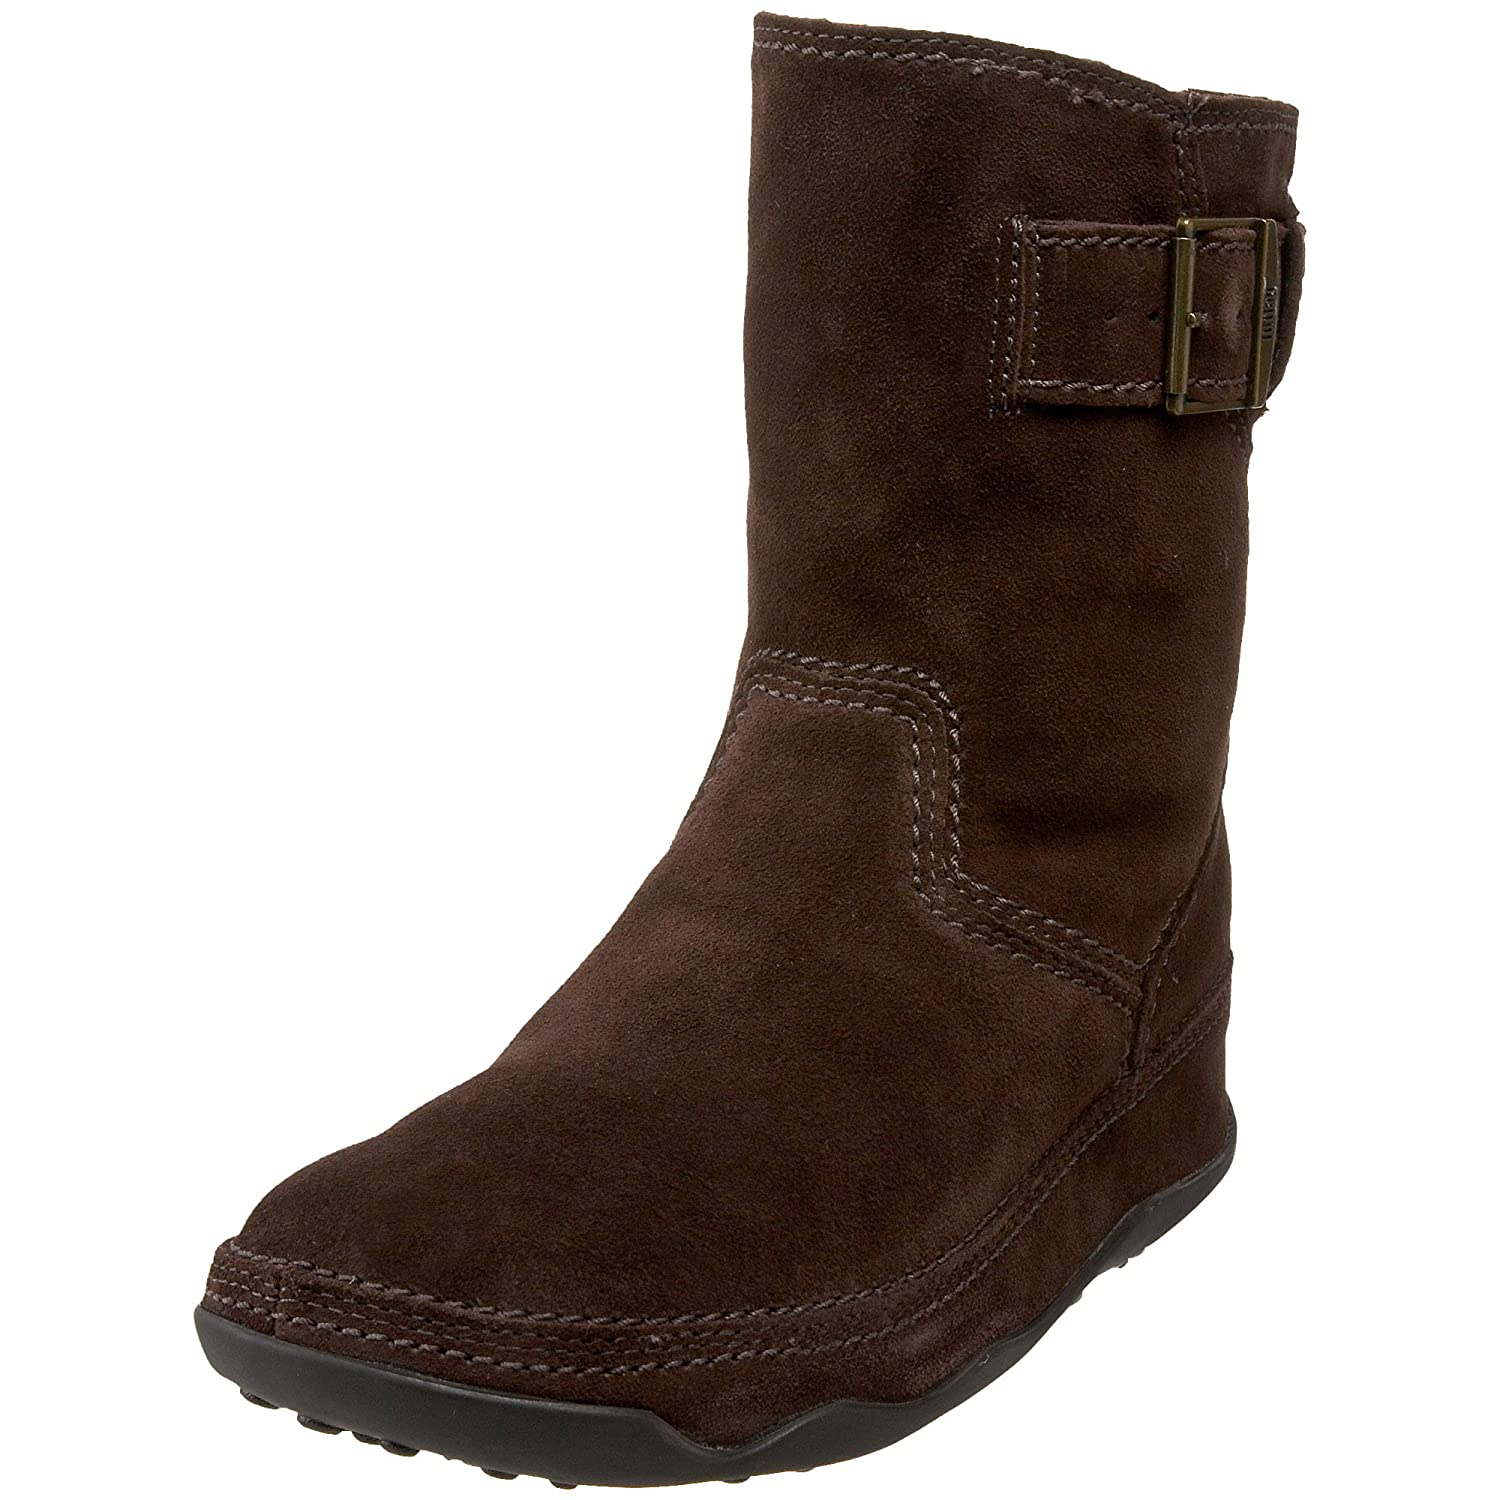 Extra 25% Off Select Boots for Columbus Day Sale